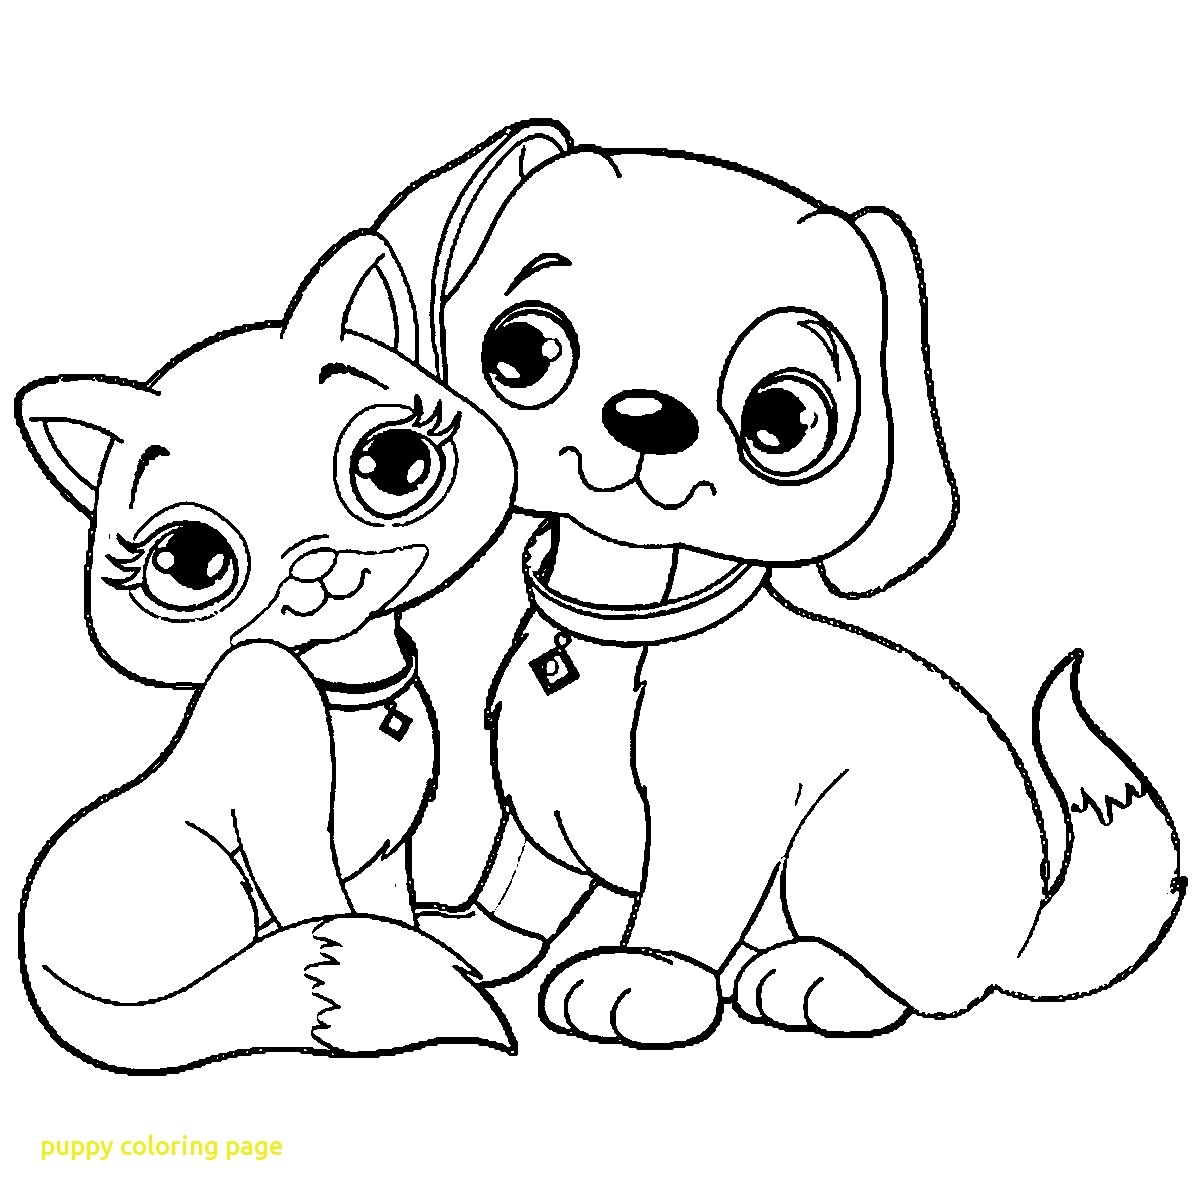 1203x1203 Impressive Coloring Pages Of Cute Dogs And Pup